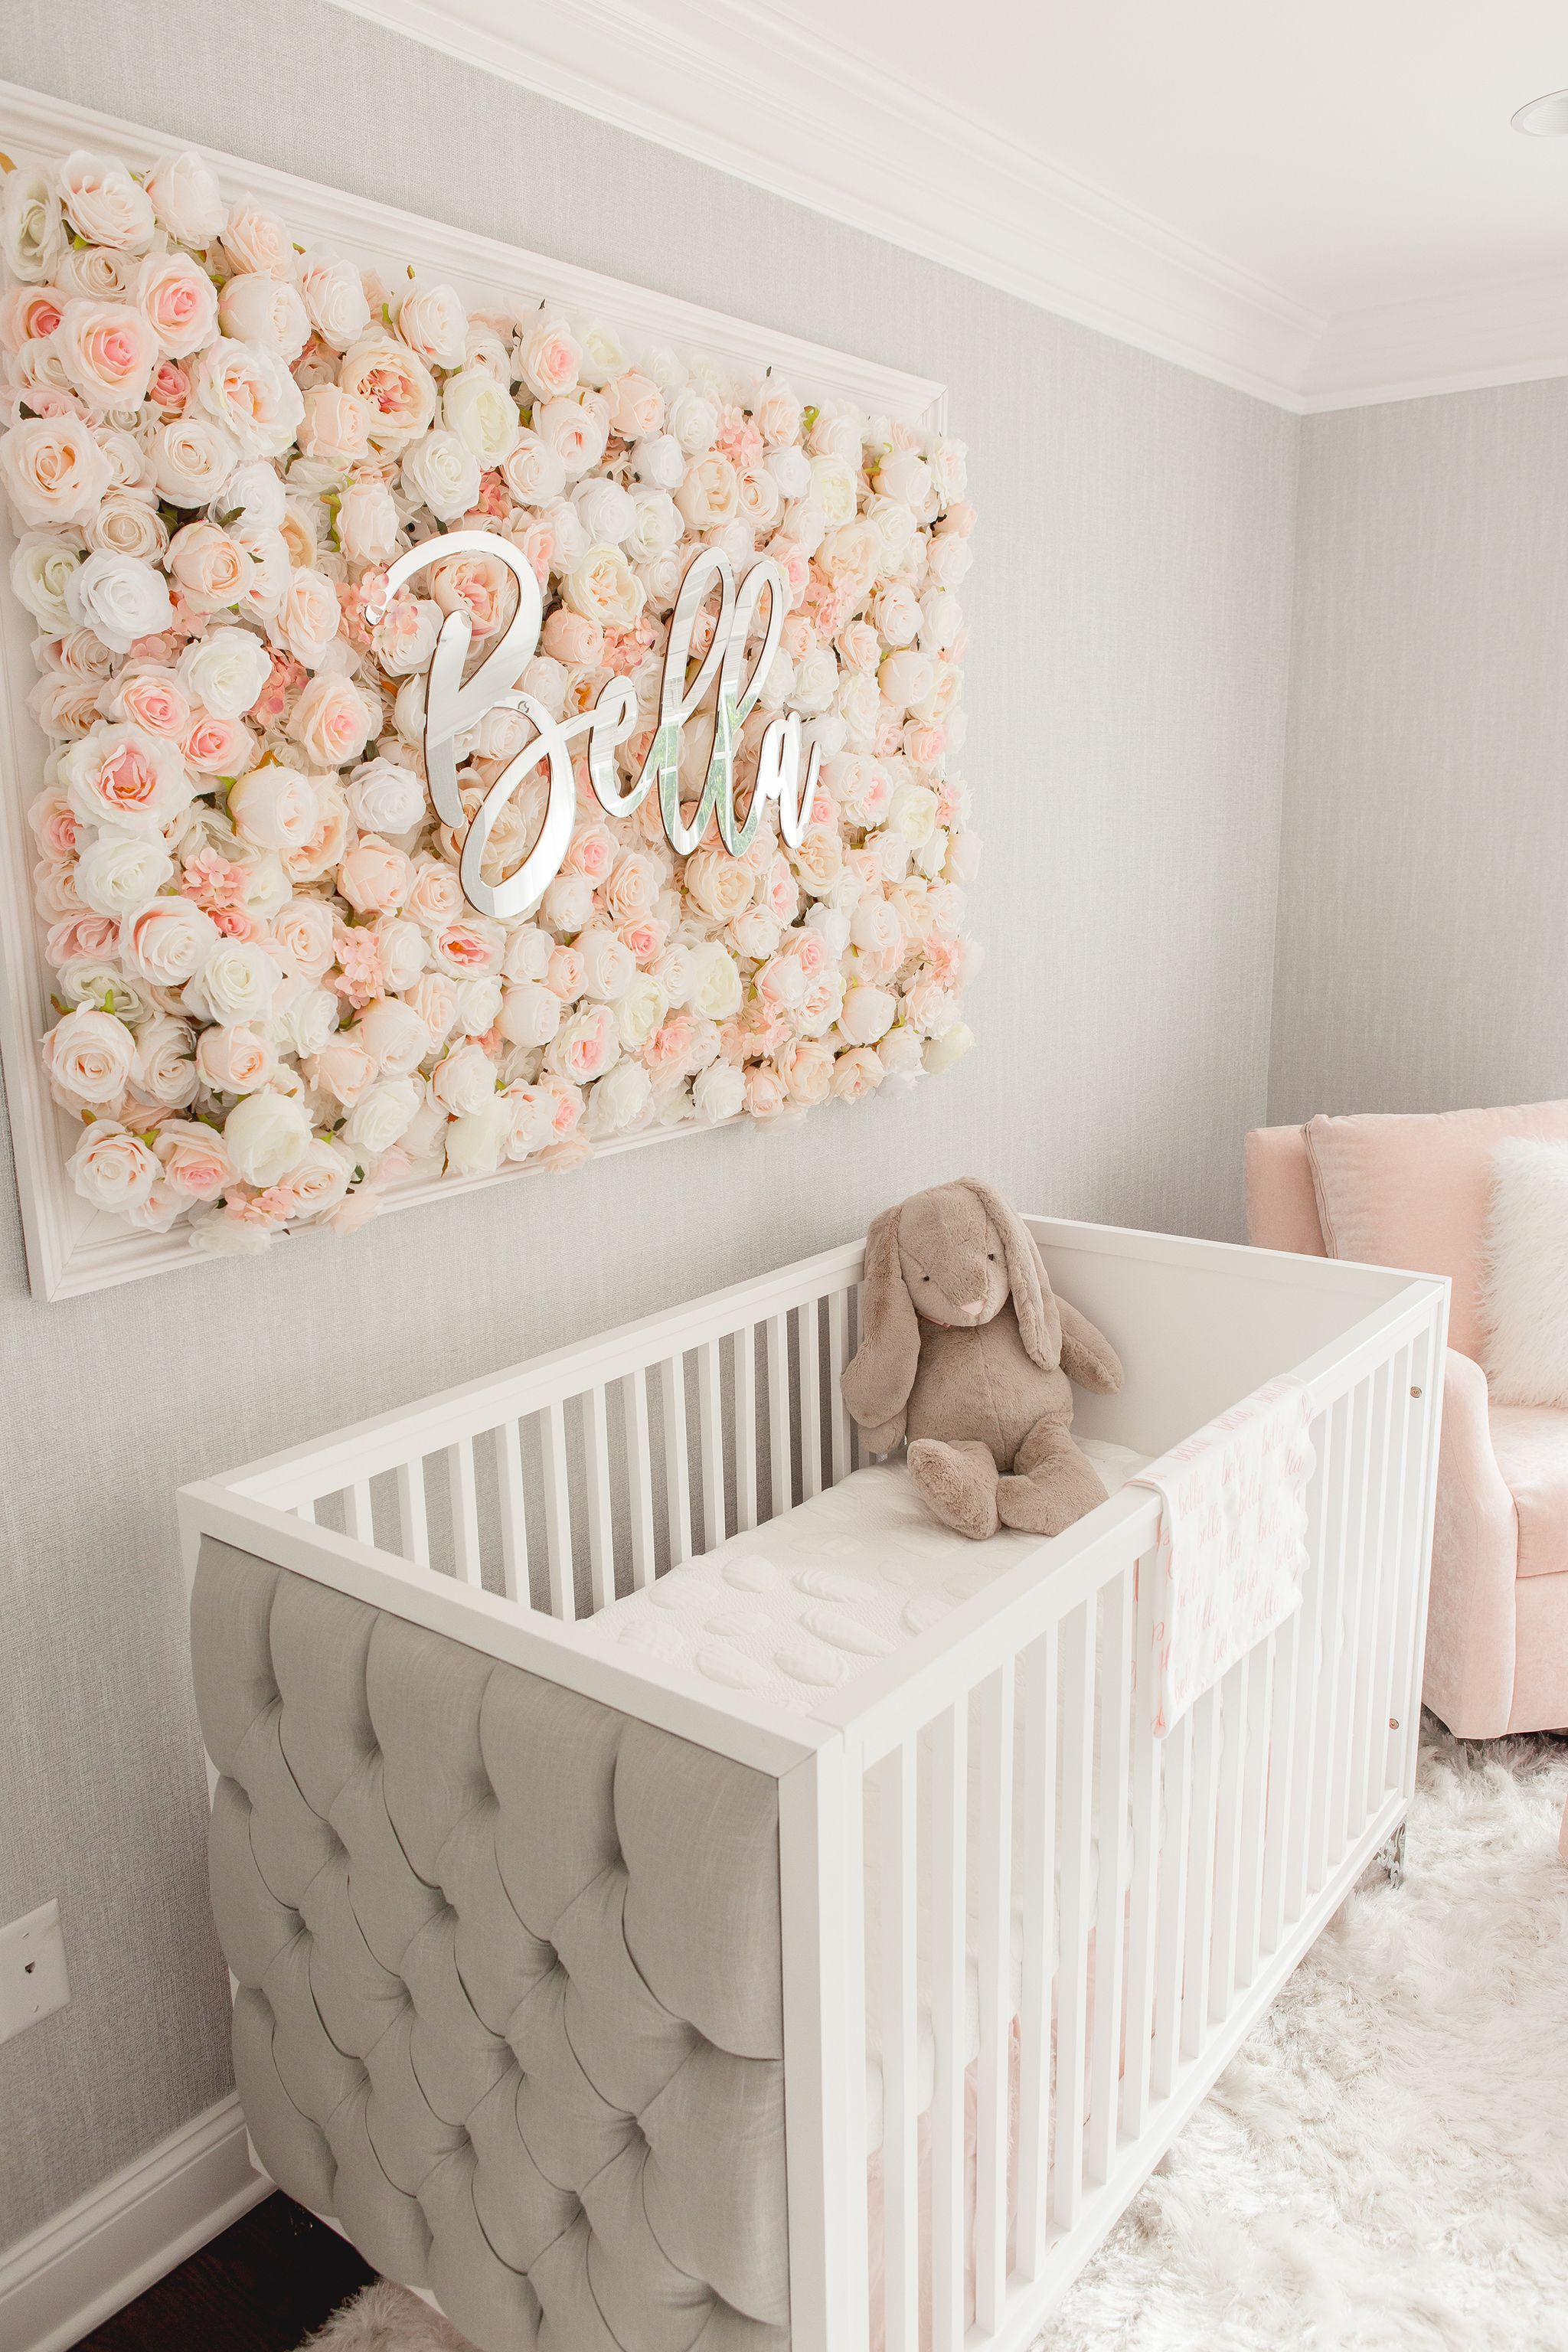 Baby Girl Nursery Decor Guess Which Celebrity Nursery Inspired this Gorgeous Space - Project Nursery